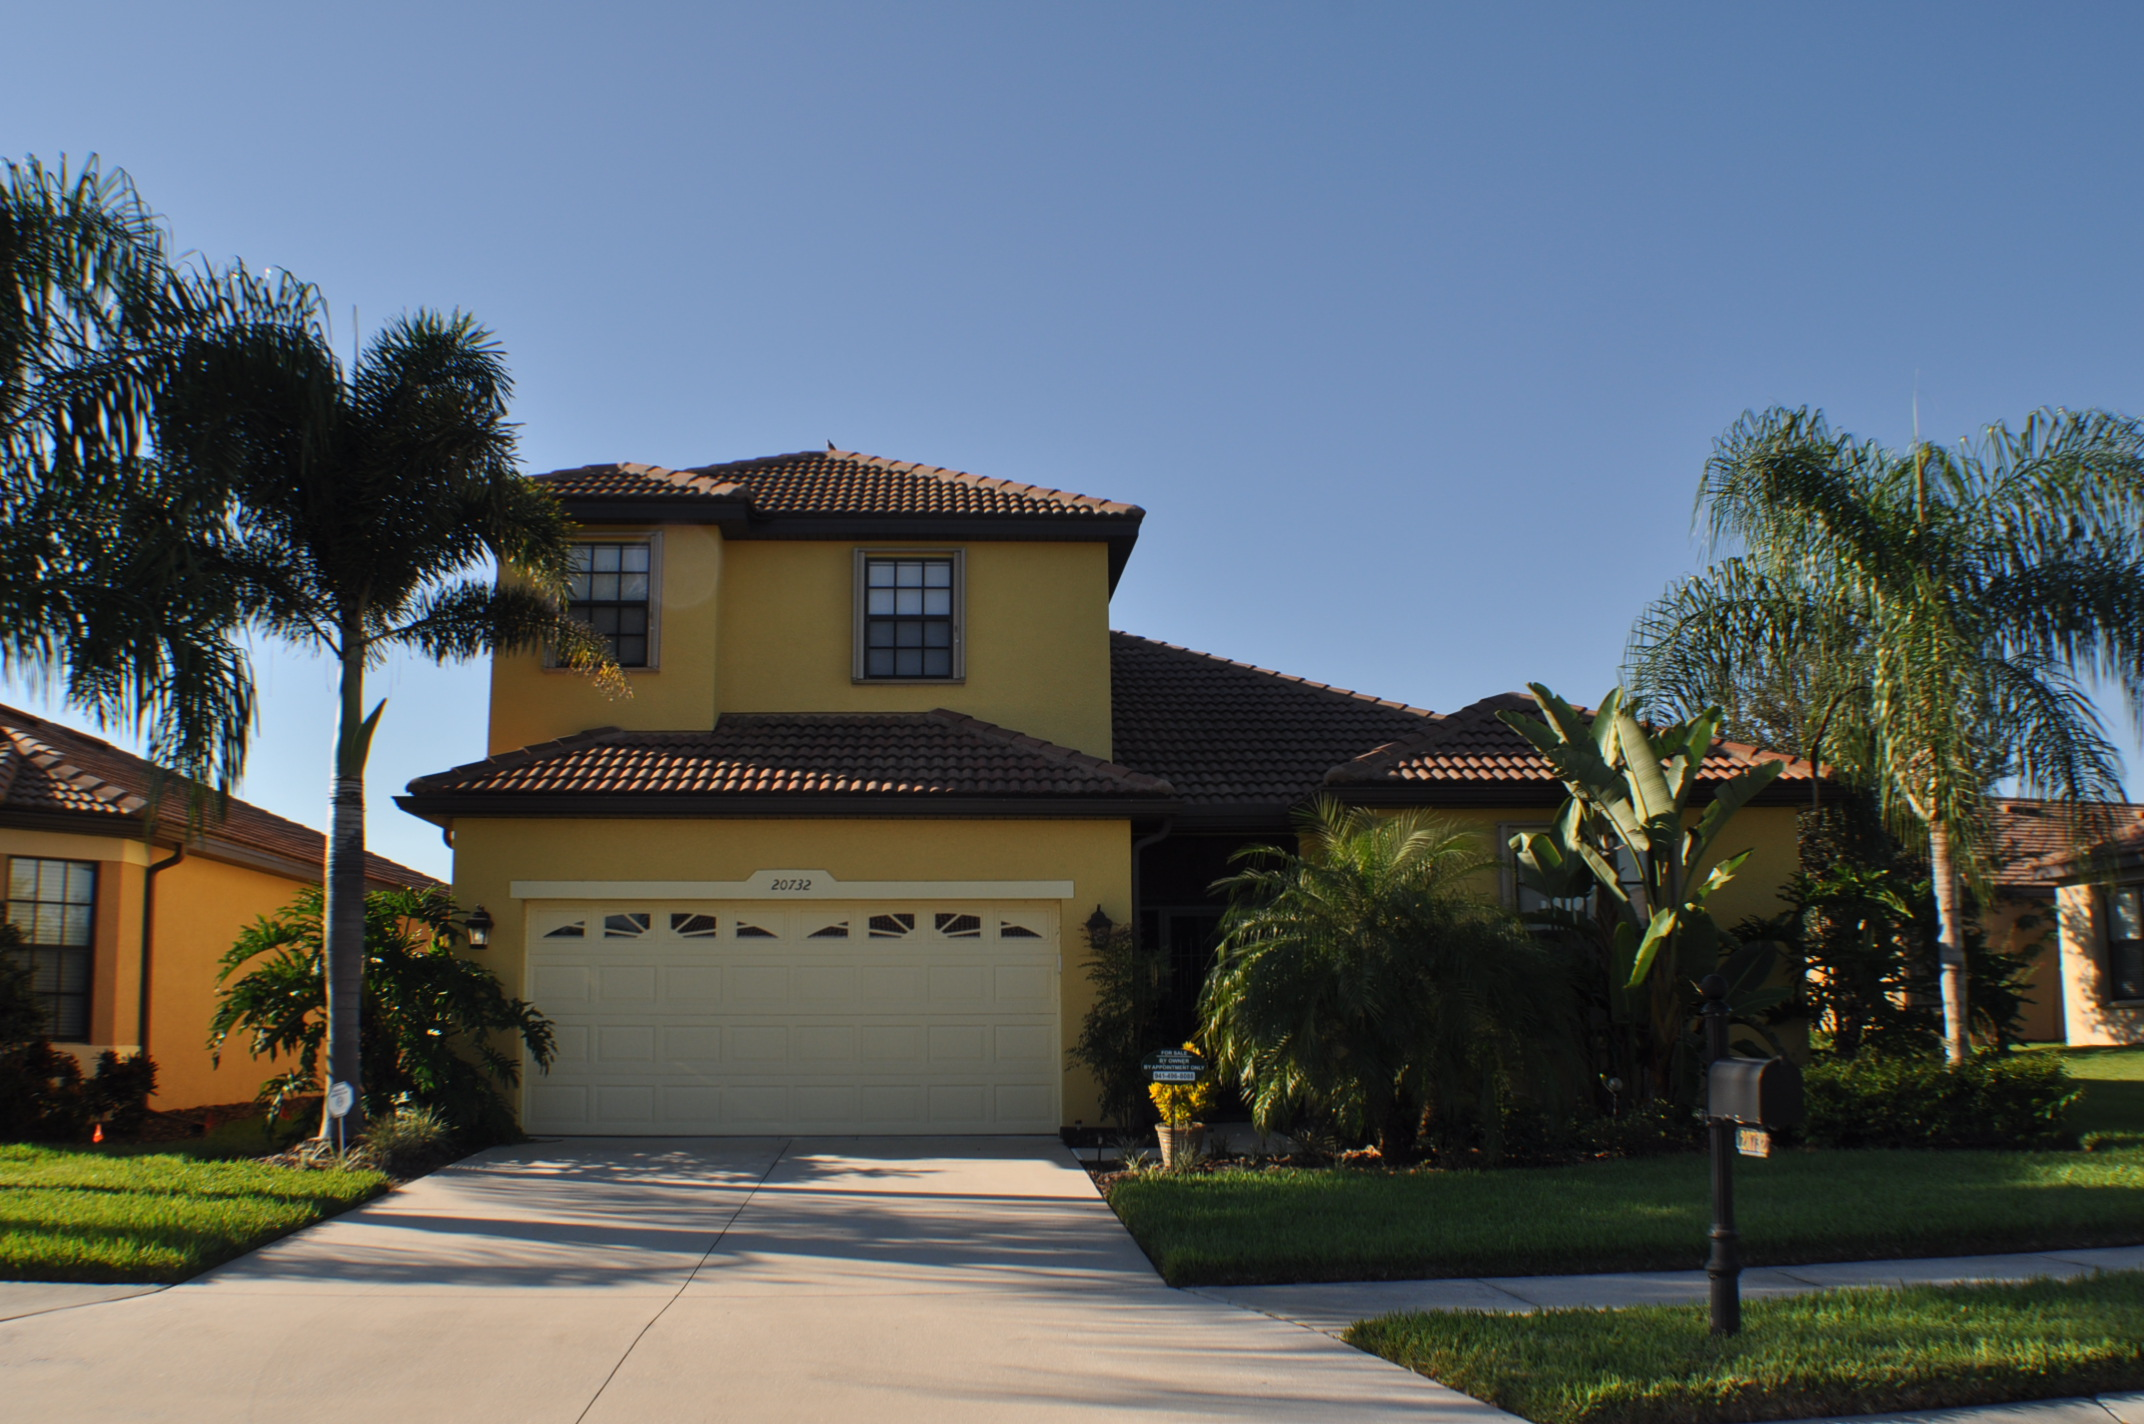 Home Painter Venice Florida Choose An Inspiring Color For Your Exterior